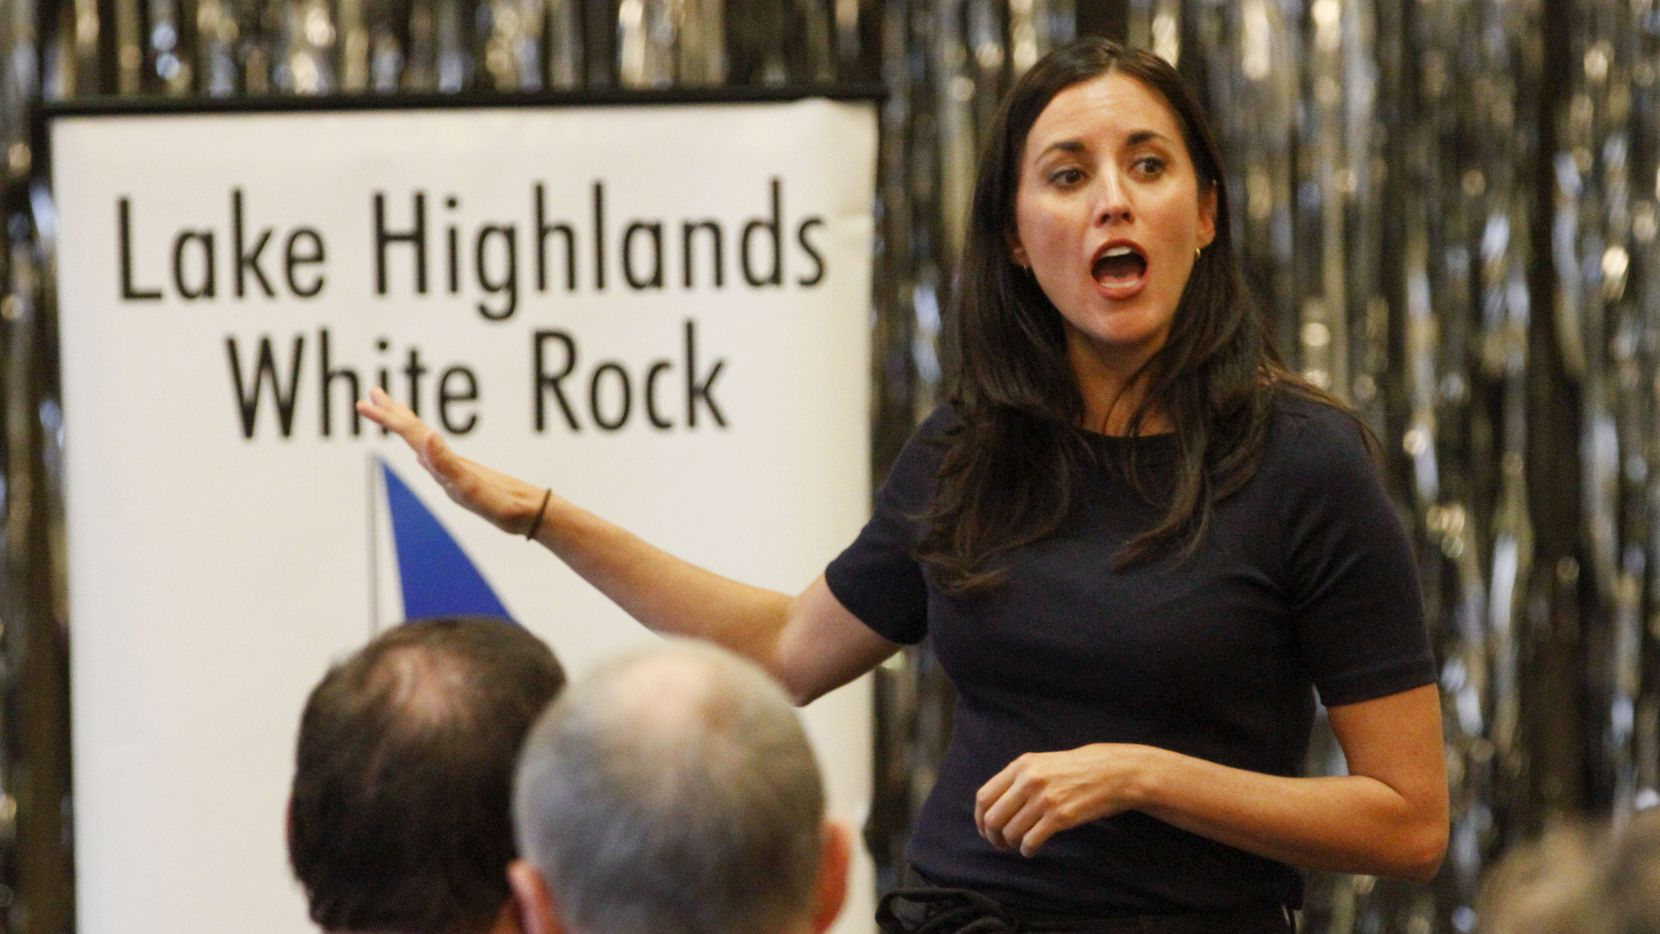 Democratic Senate candidate Cristina Tzintzún Ramirez speaks at a meeting of the Lake Highlands Democratic Party Club in Dallas Saturday, December 21, 2019. (Brian Elledge/The Dallas Morning News)